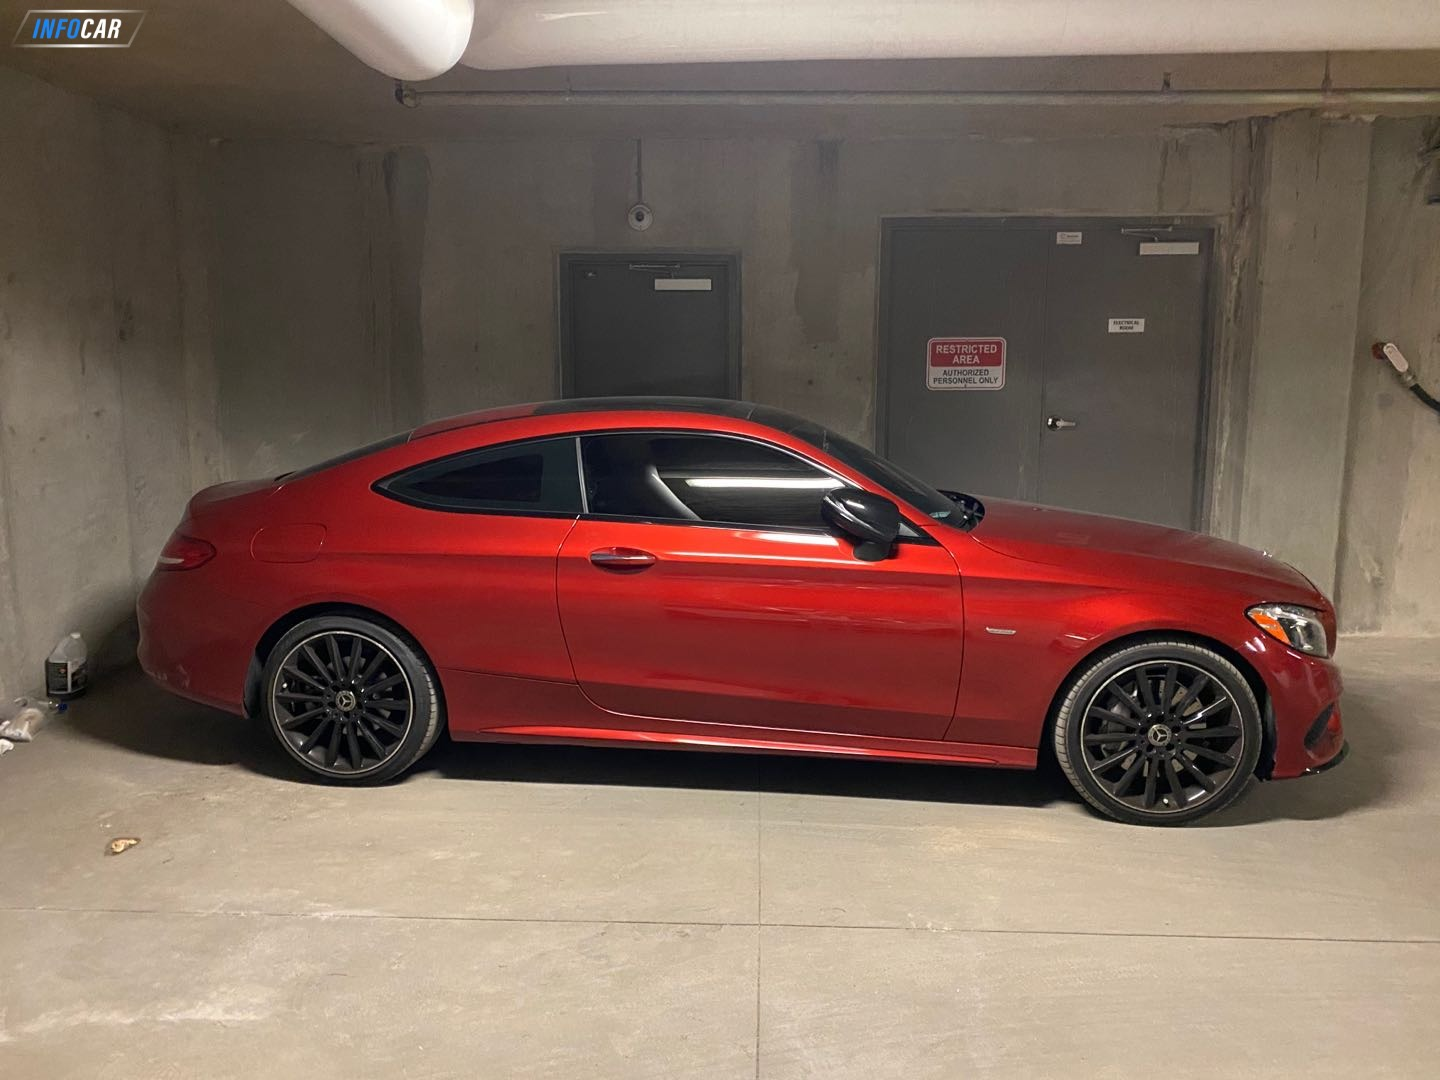 2018 Mercedes-Benz C-Class c300 Coupe - INFOCAR - Toronto's Most Comprehensive New and Used Auto Trading Platform